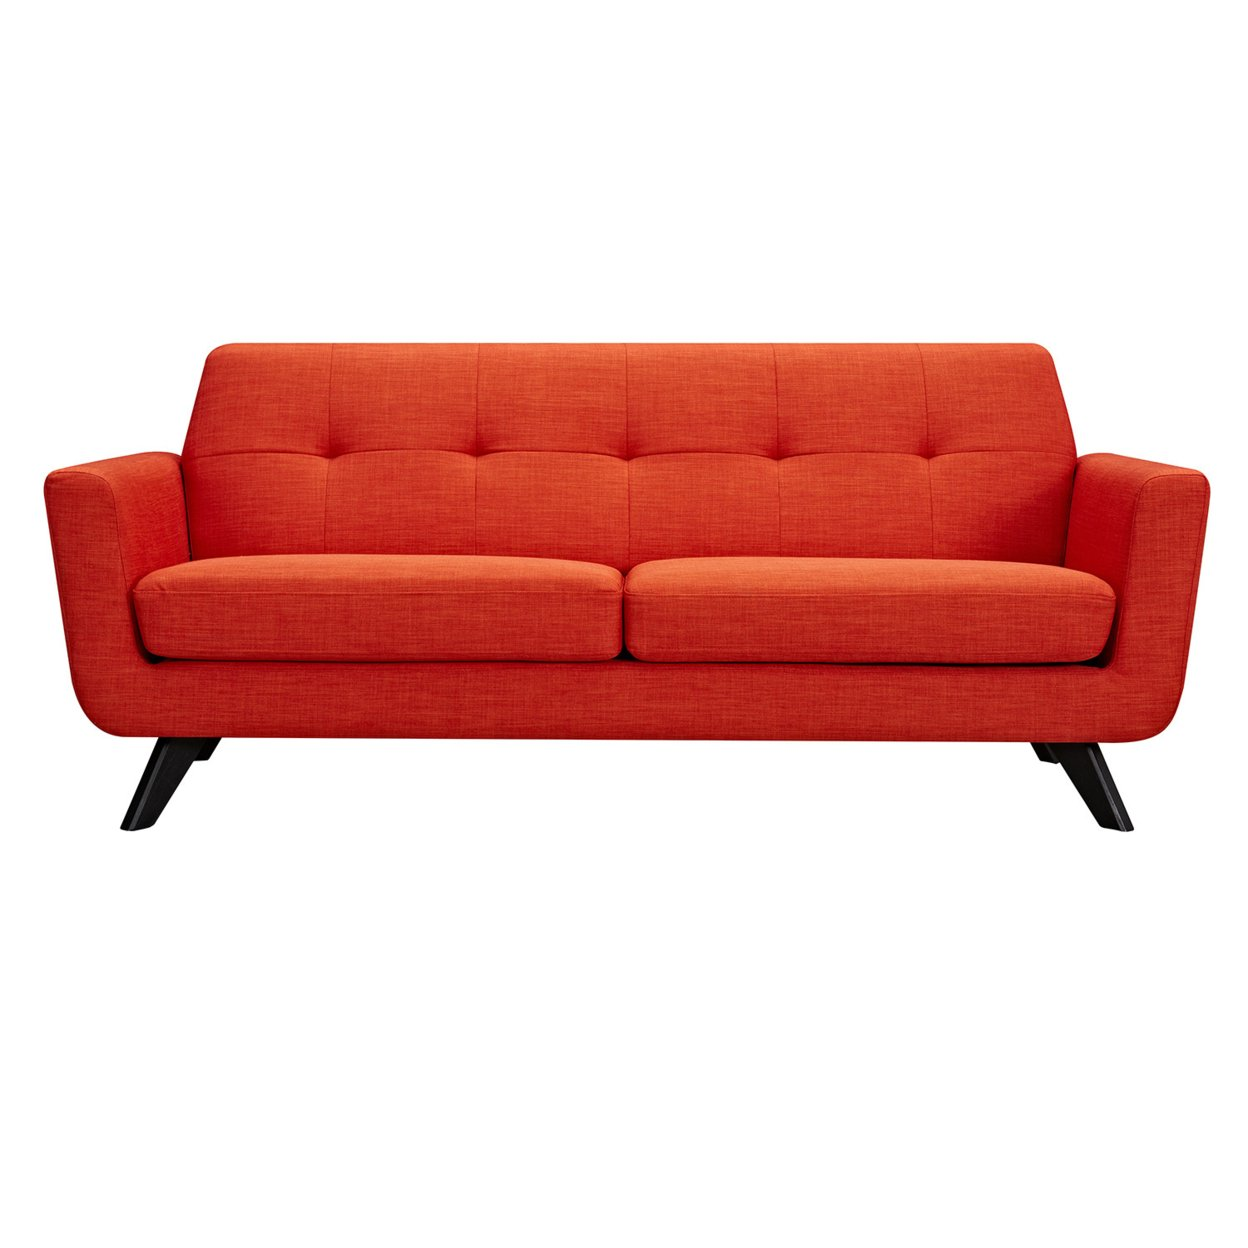 orange sofa usa. Black Bedroom Furniture Sets. Home Design Ideas